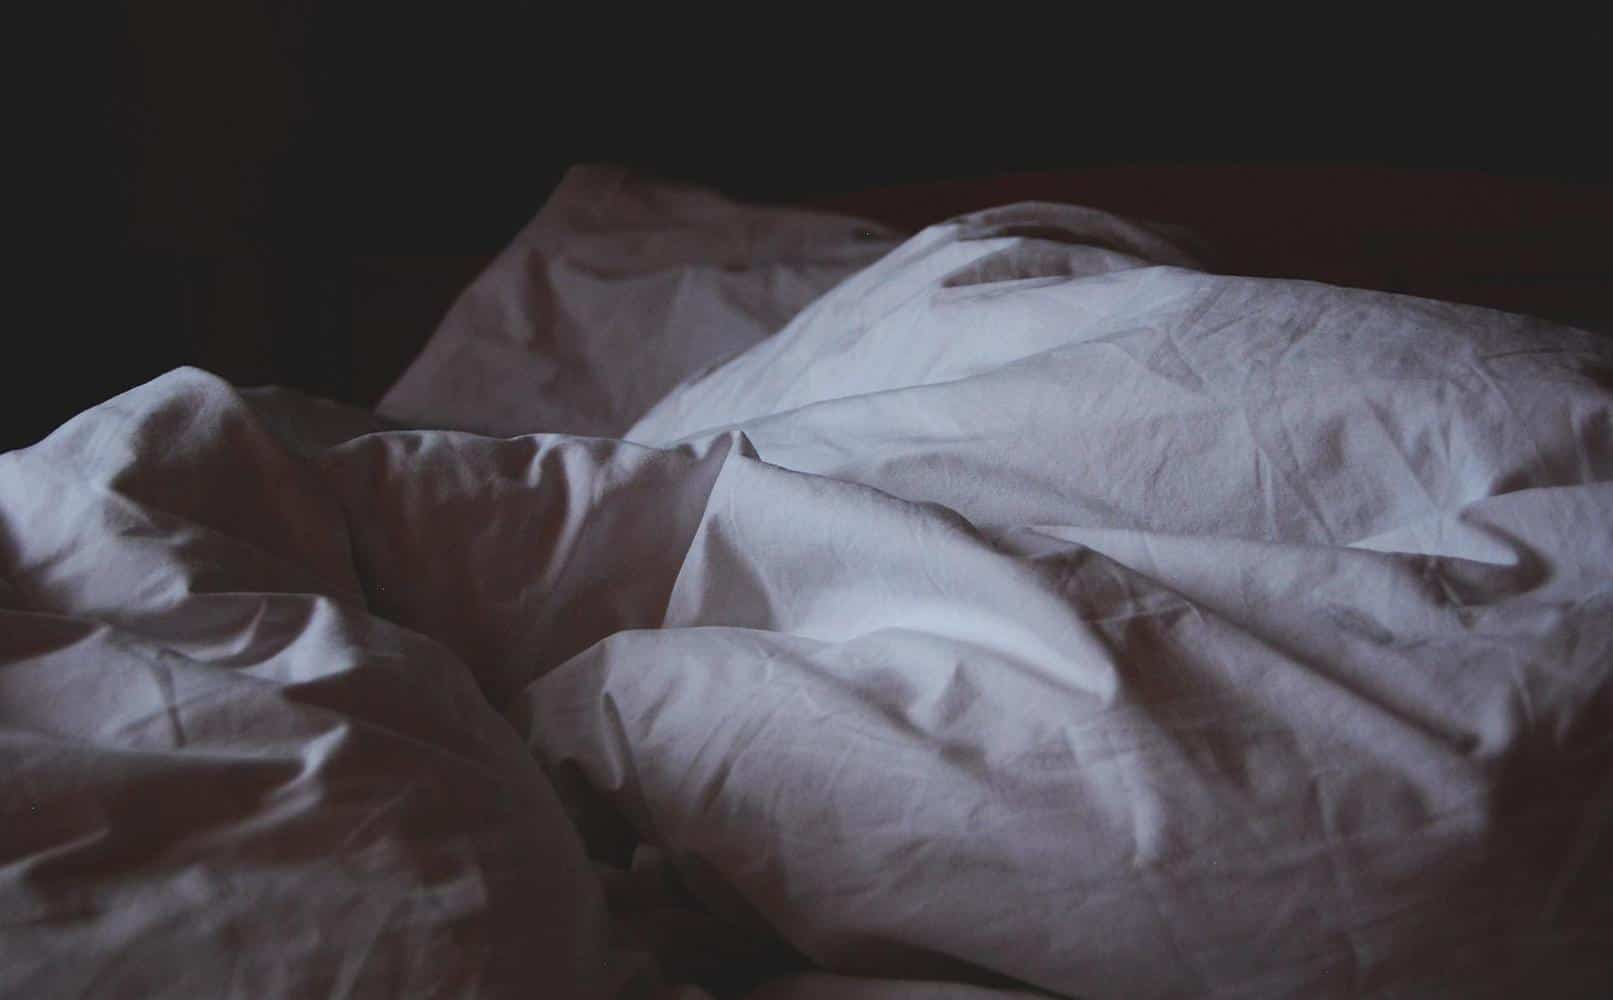 Linen bed sheets in the dark.